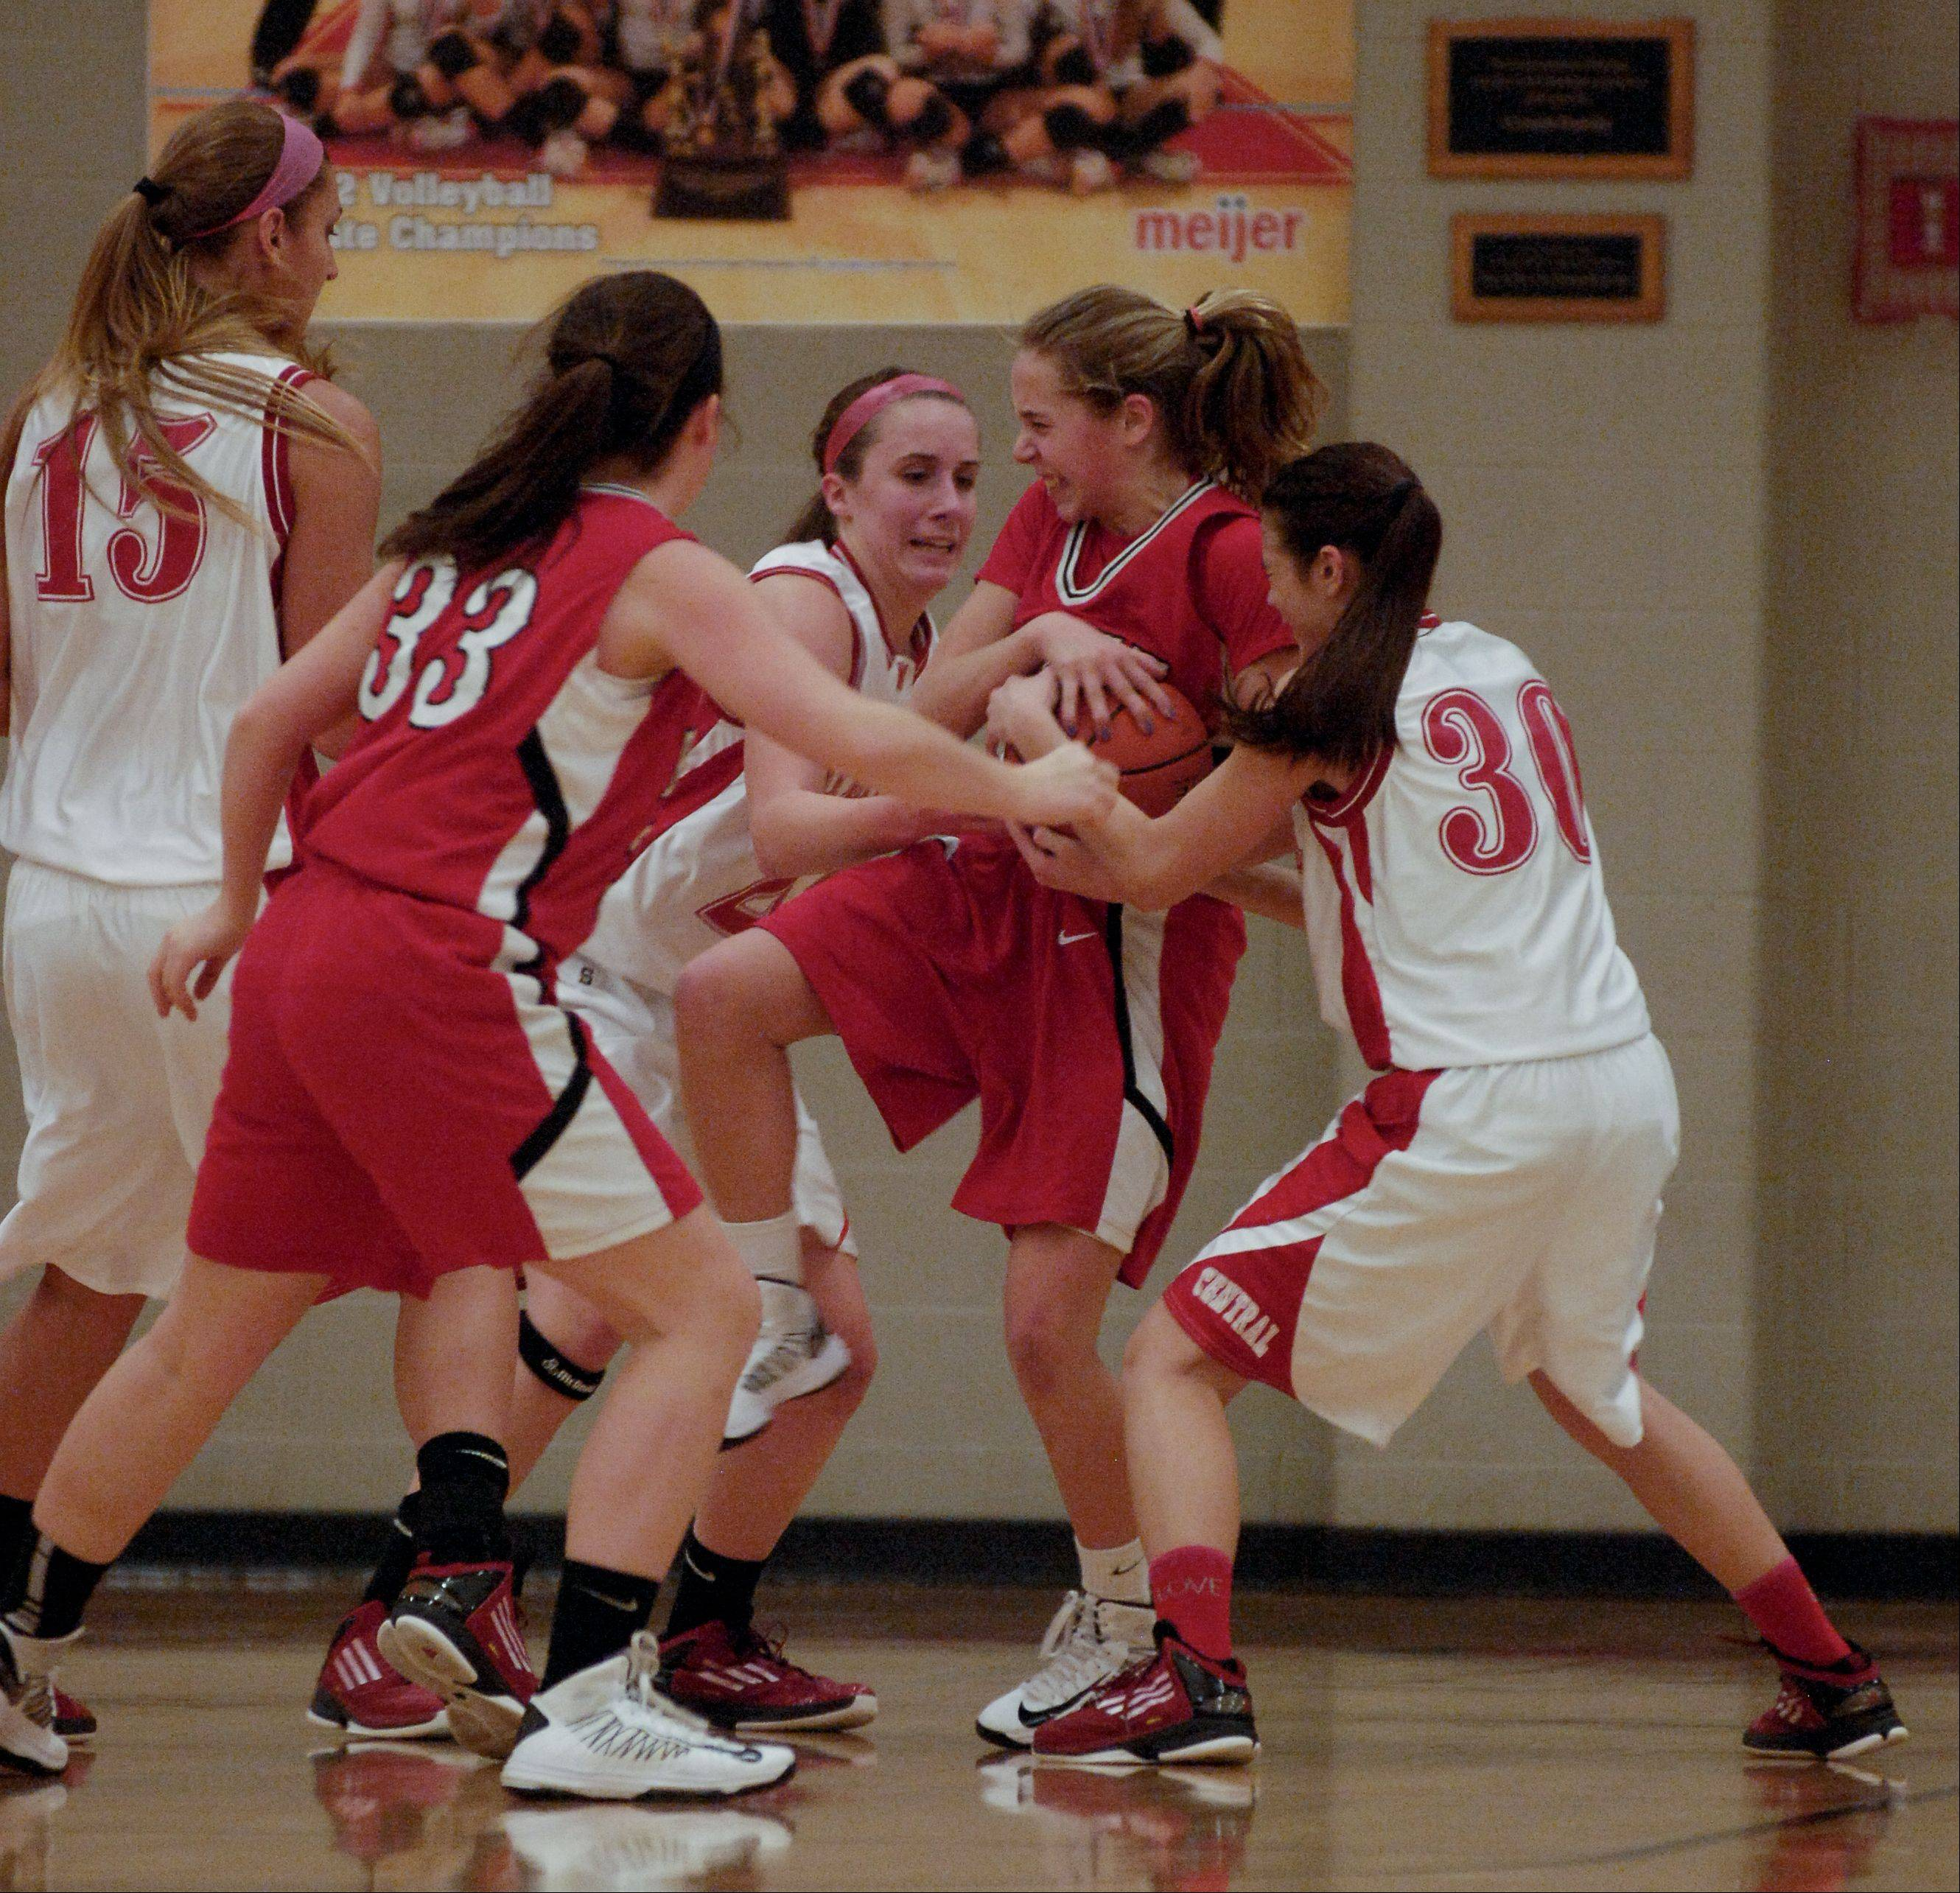 Images from the Naperville Central vs. Benet Academy girls Class 4A regional final basketball game on Thursday, February 14, 2013.